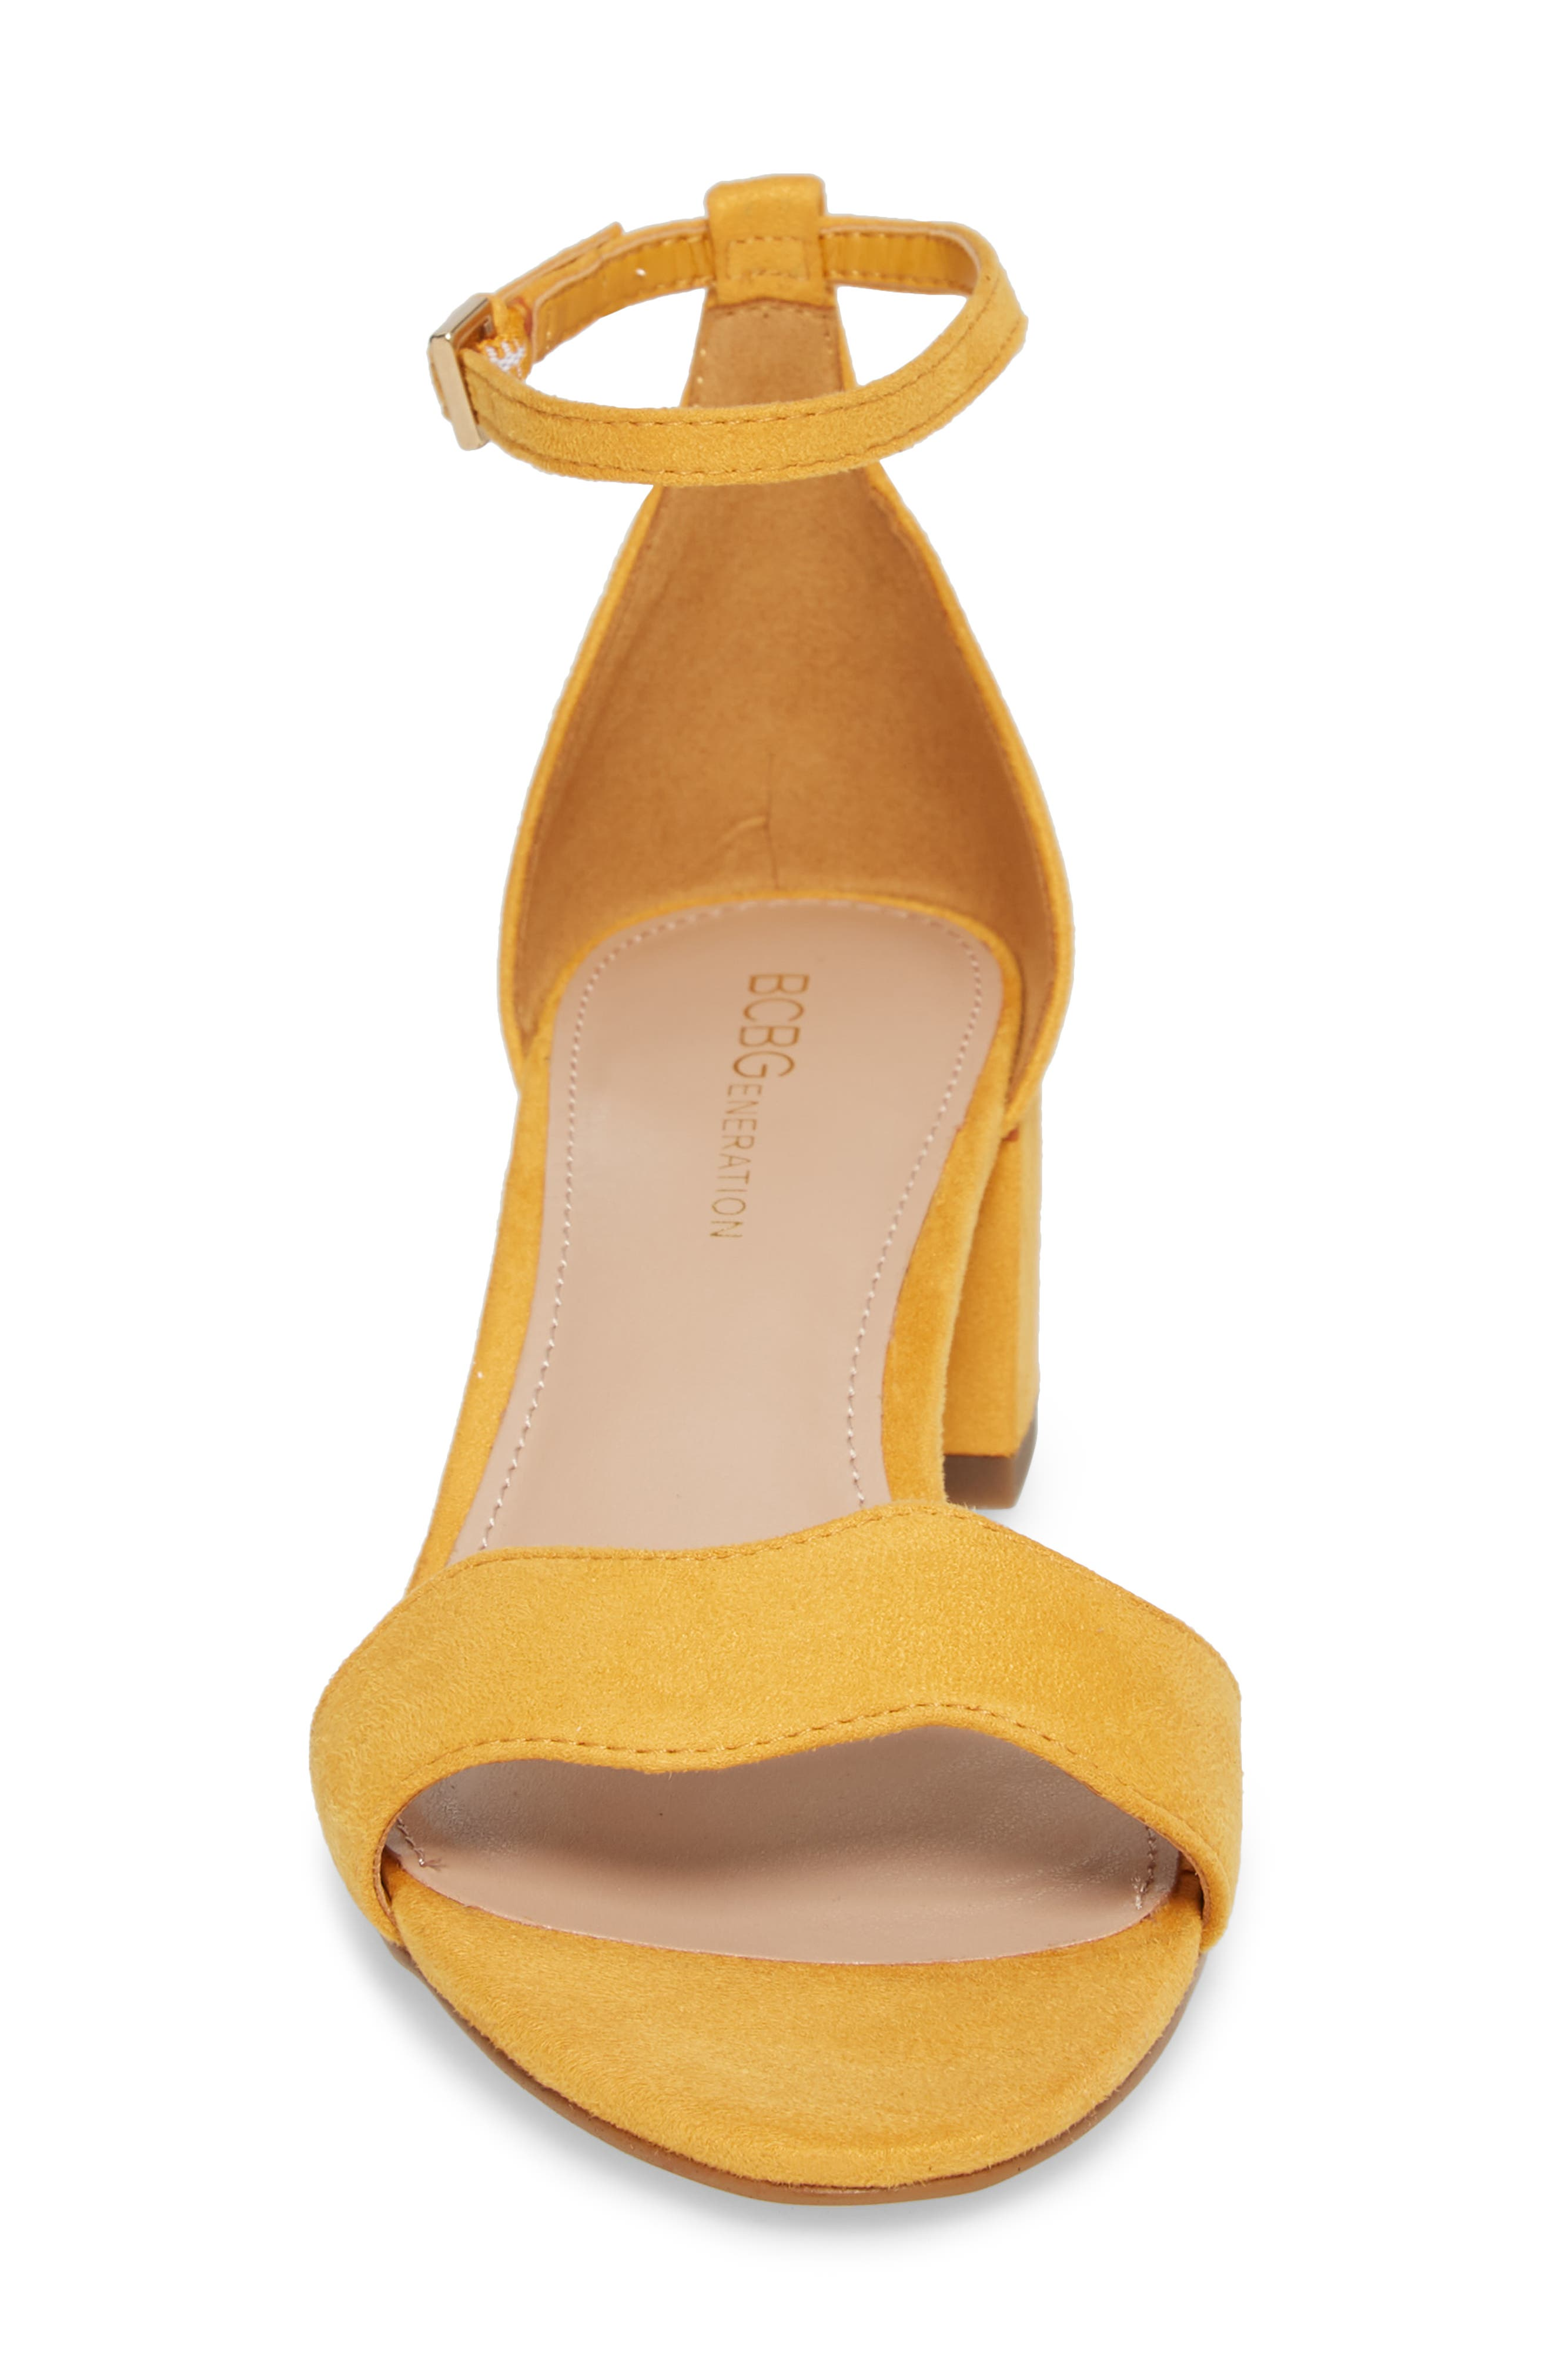 Farlyn Ankle Strap Sandal,                             Alternate thumbnail 4, color,                             Marigold Faux Leather